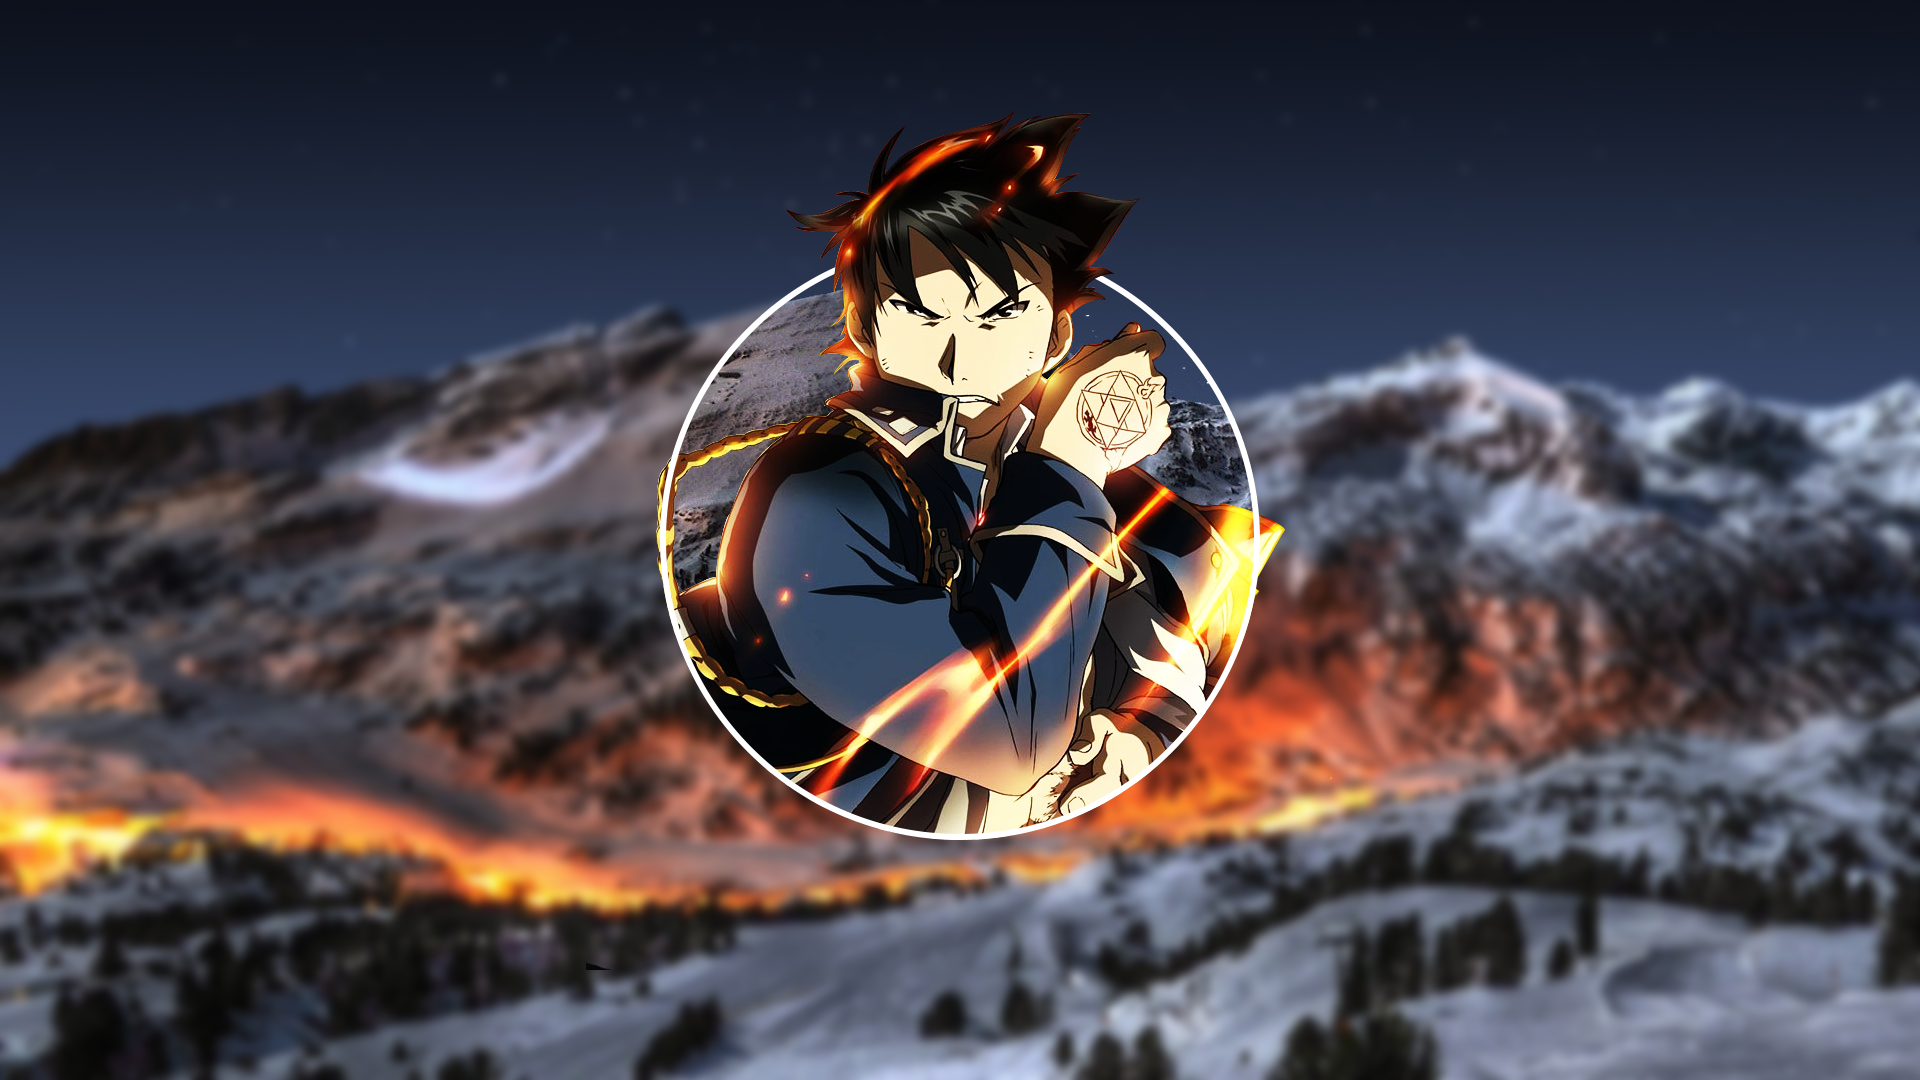 Anime 1920x1080 Roy Mustang Full Metal Alchemist Fullmetal Alchemist: Brotherhood picture-in-picture